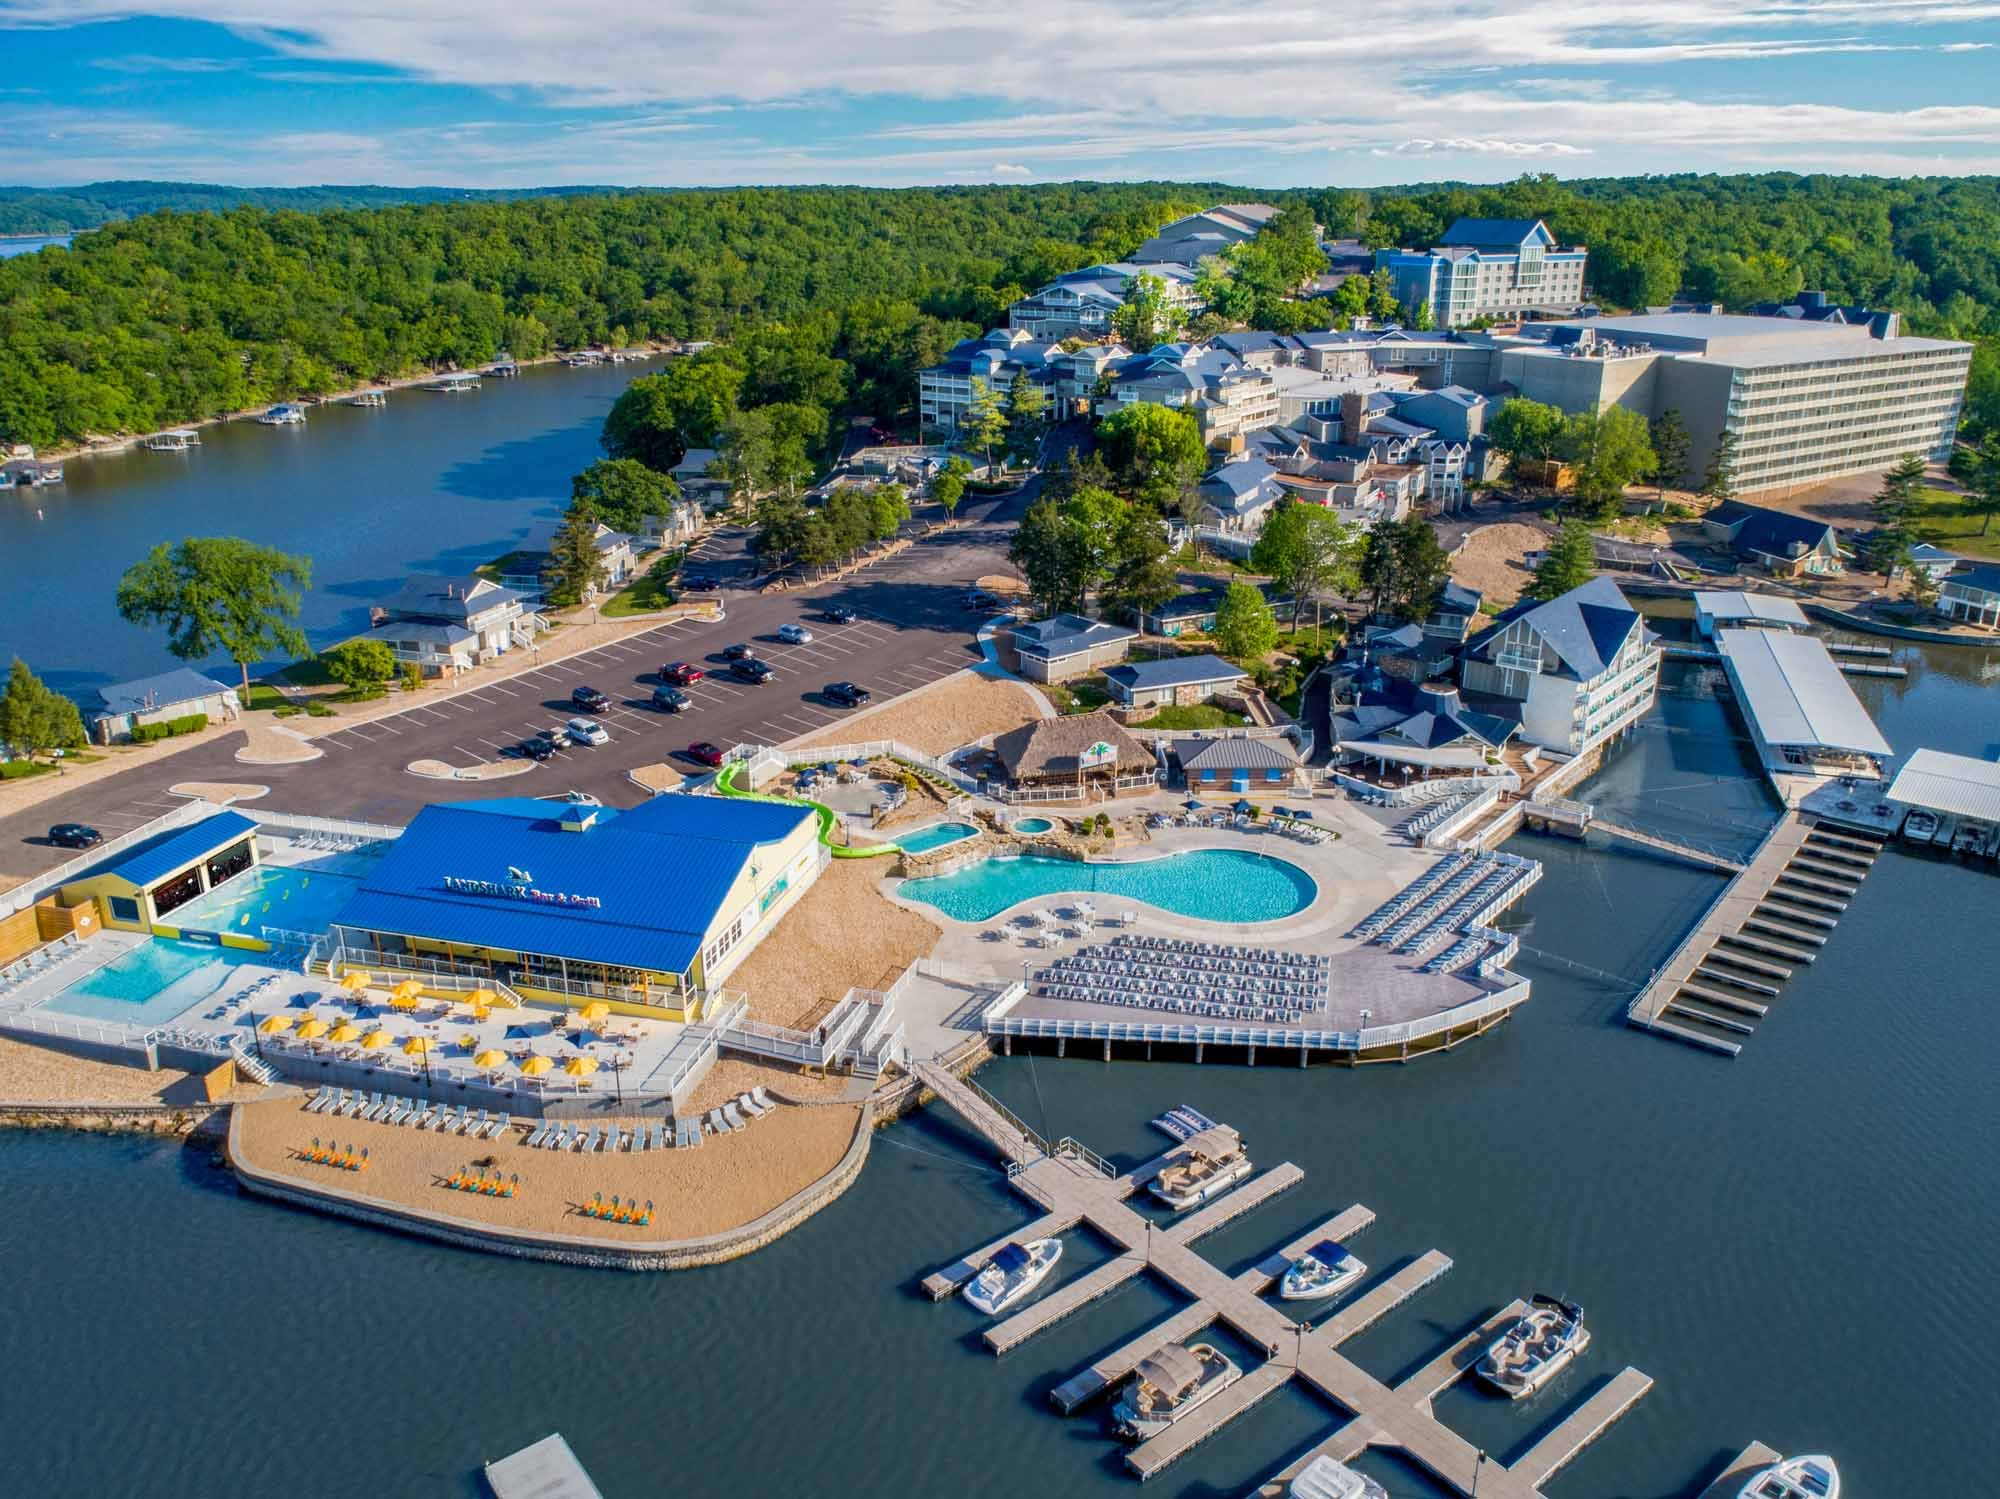 margaritaville resort lake of the ozarks first class osage beach mo hotels gds reservation codes travel weekly travel weekly